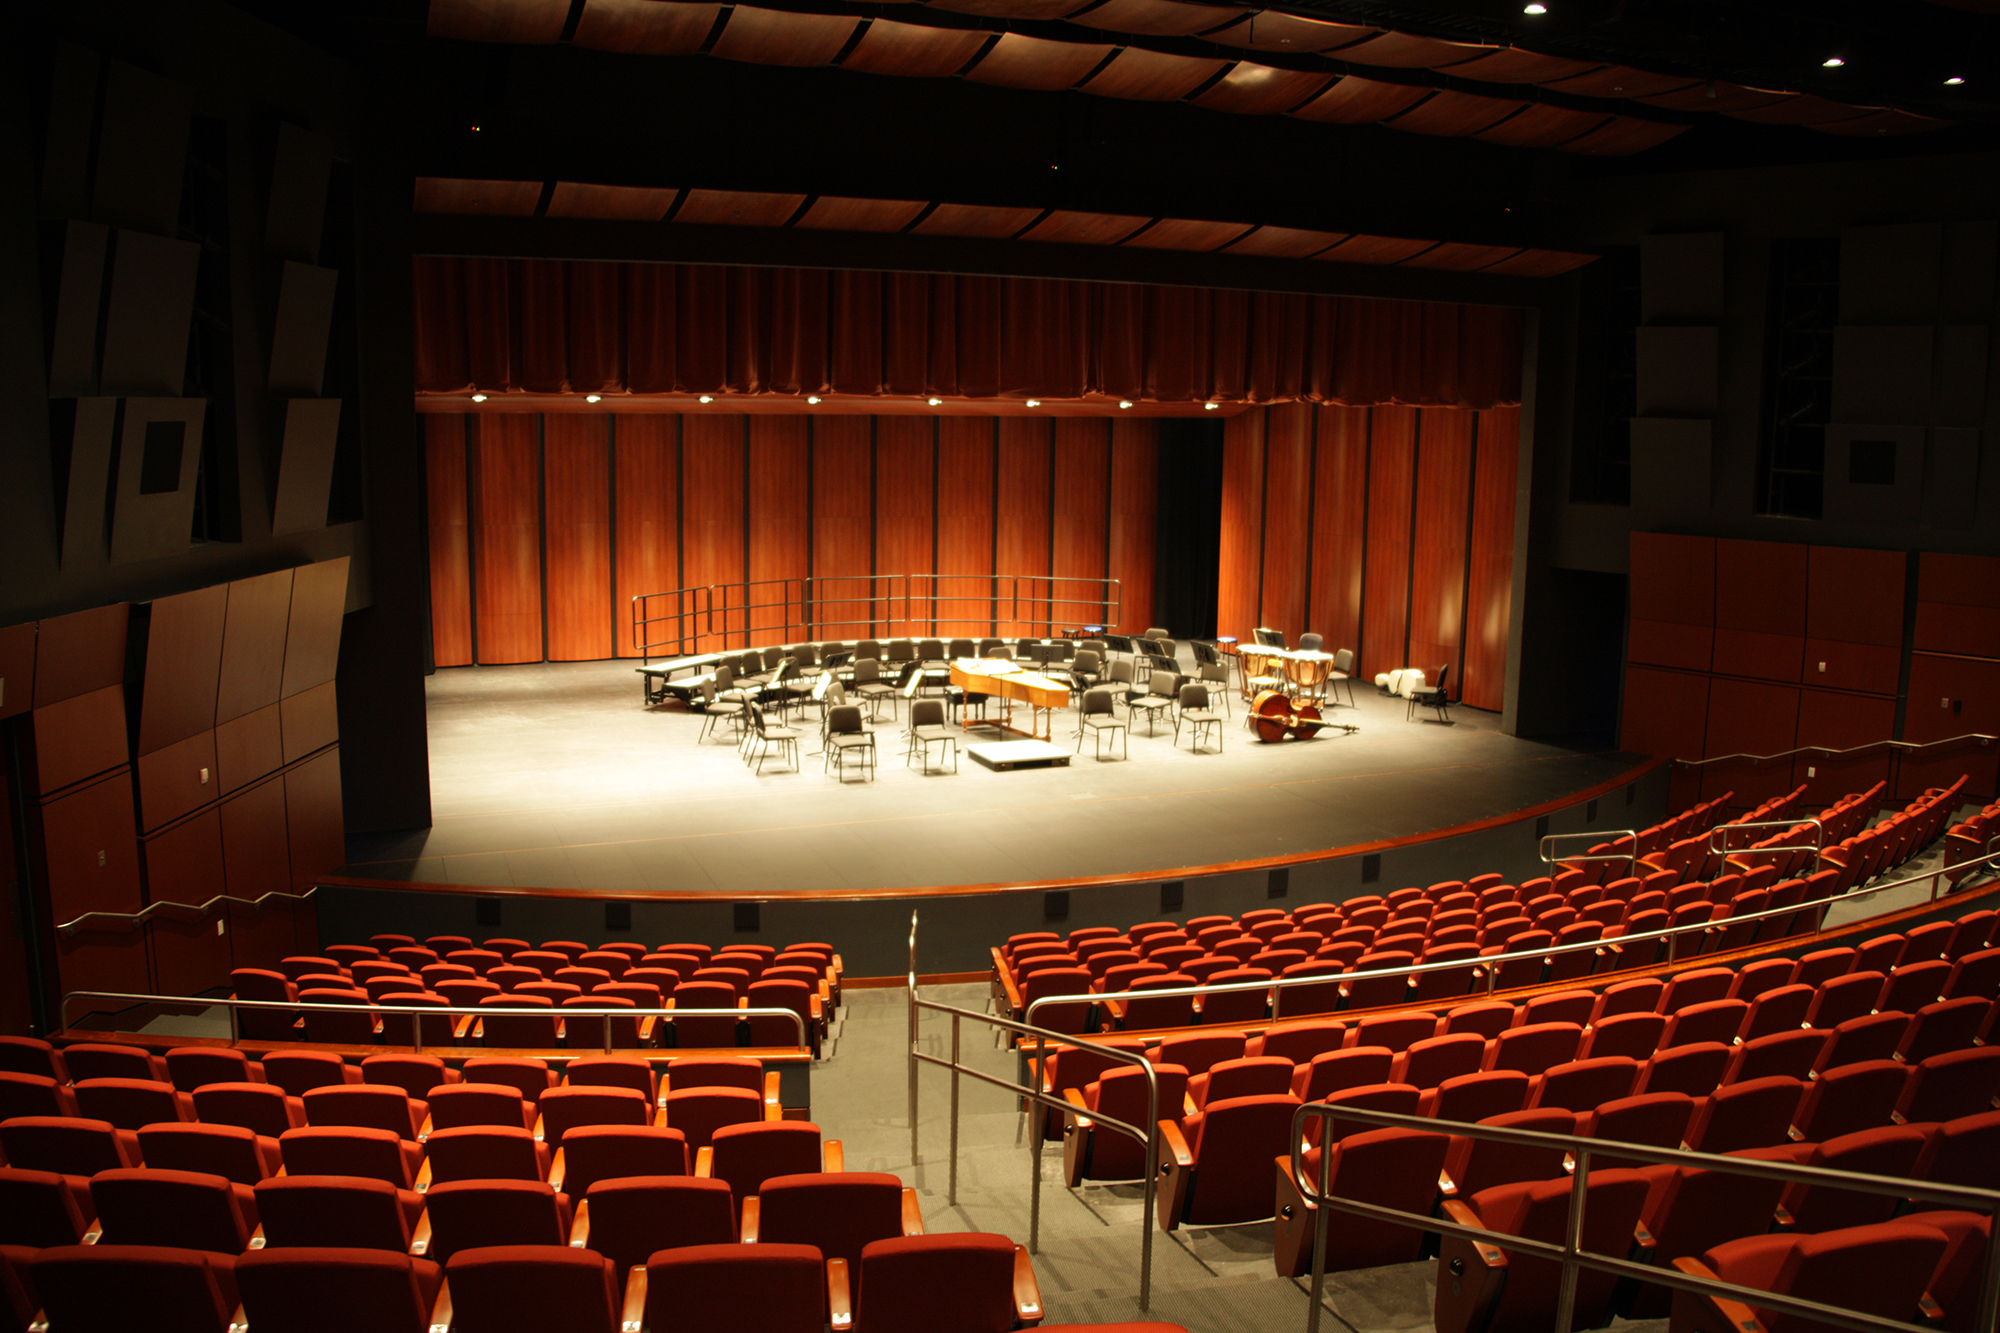 performing arts livermore find theater rental info